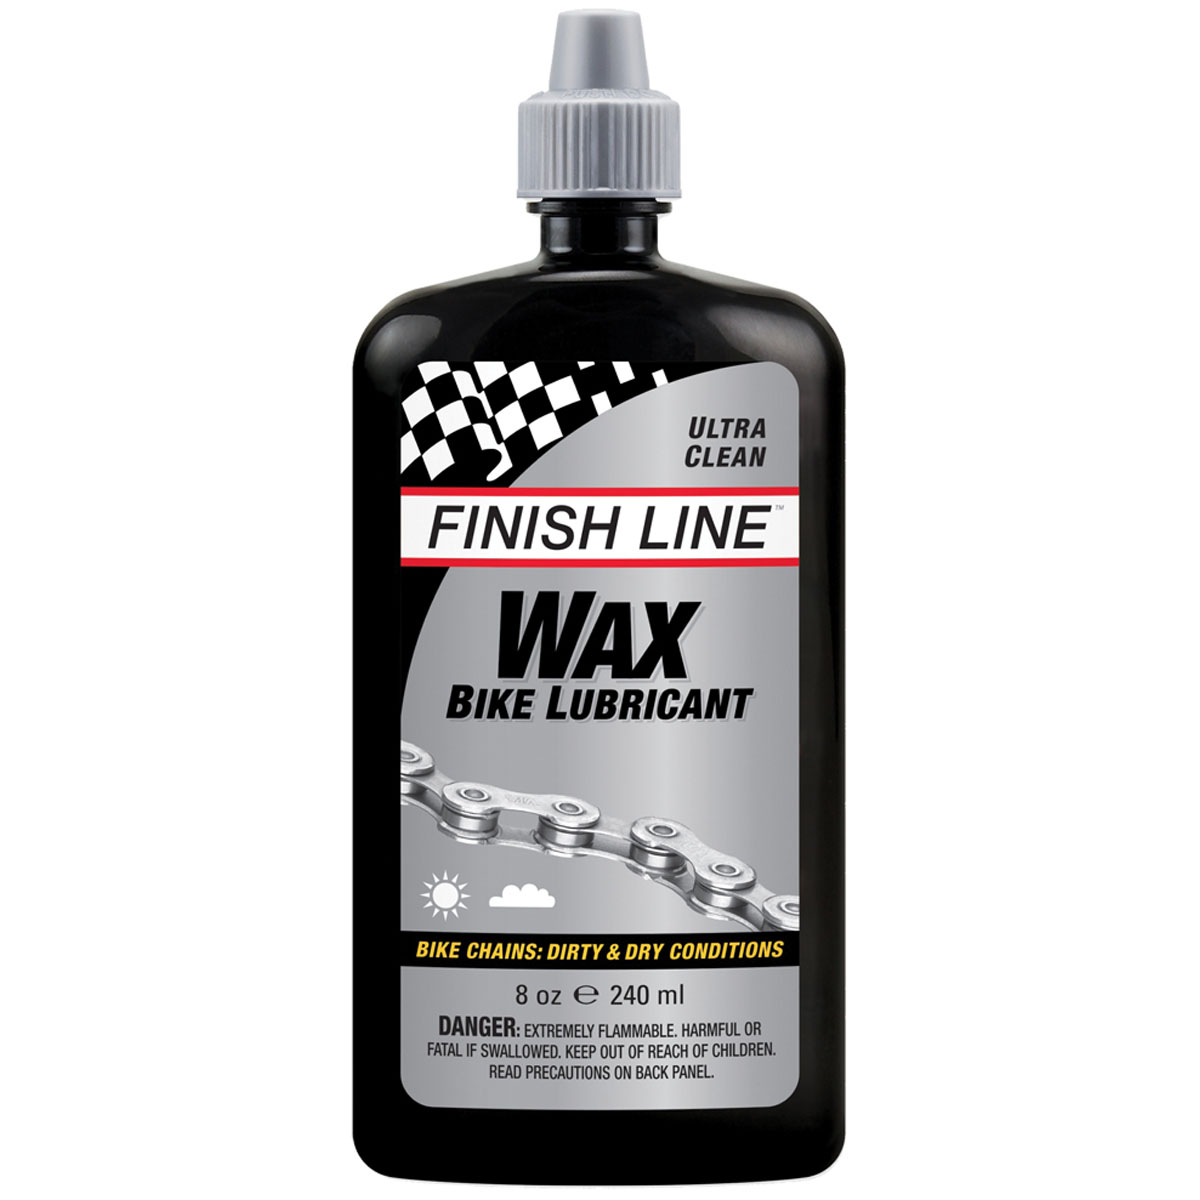 Finish Line Wax Bike Lubricant - 8oz Drip - KL0080101